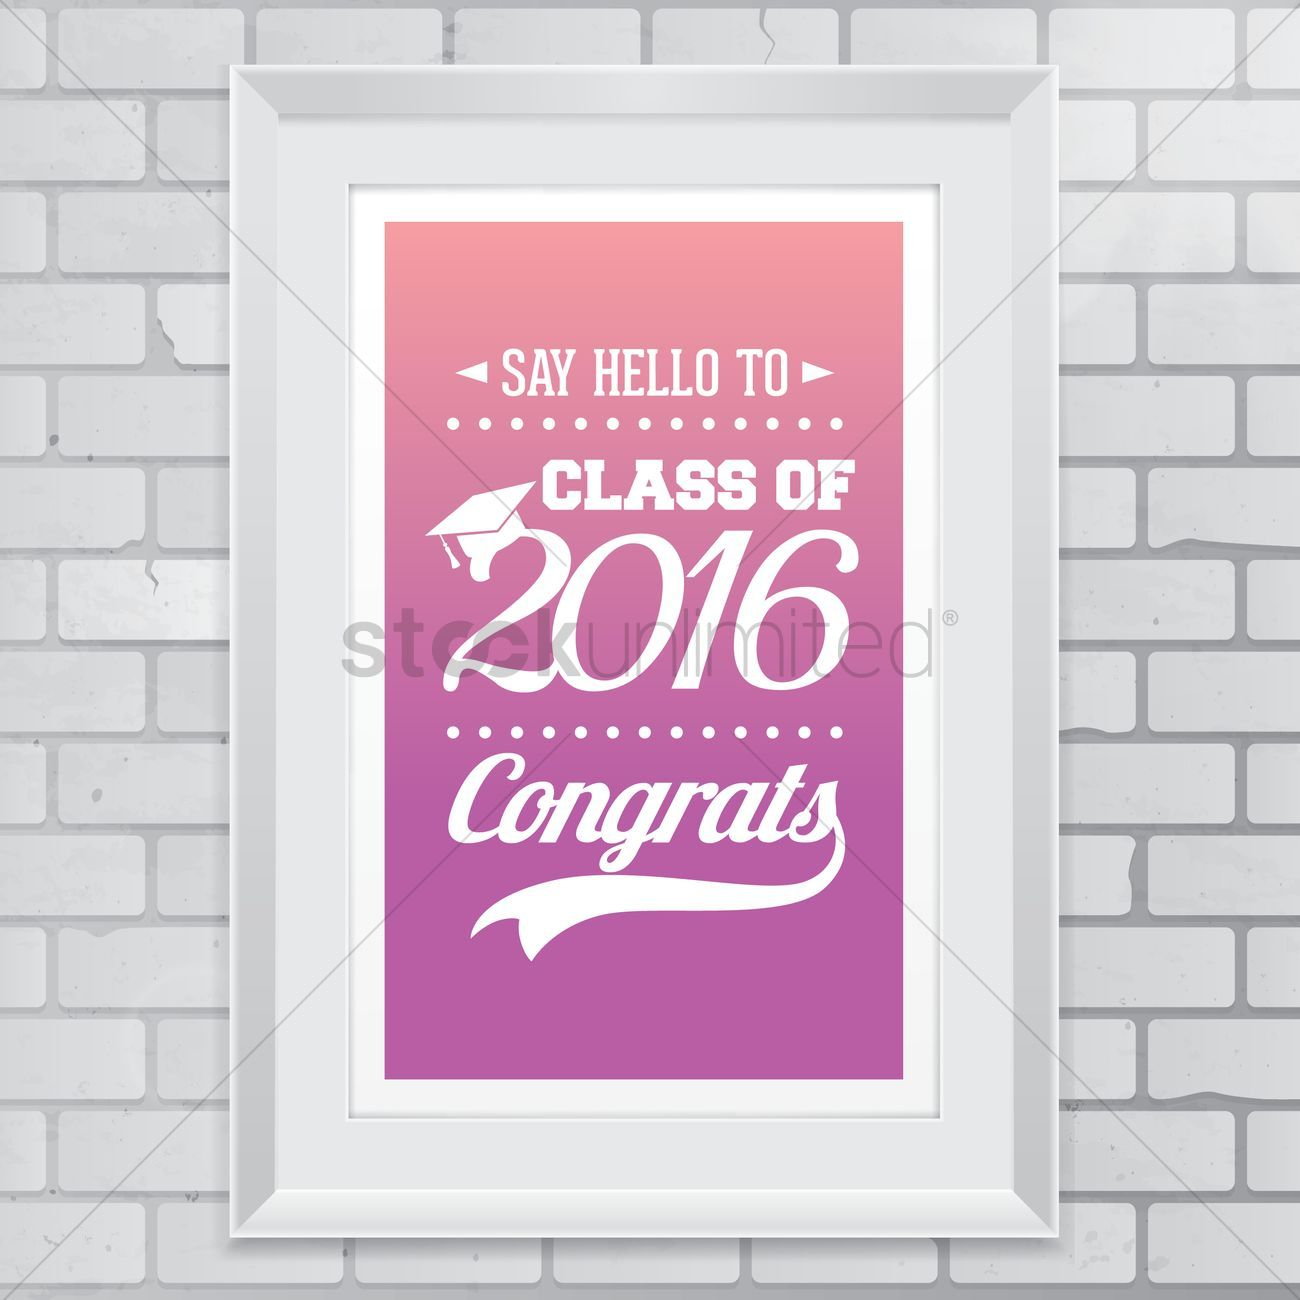 Photo of Graduation wallpaper vector illustration , #spon, #wallpaper, #Graduation, #illu…